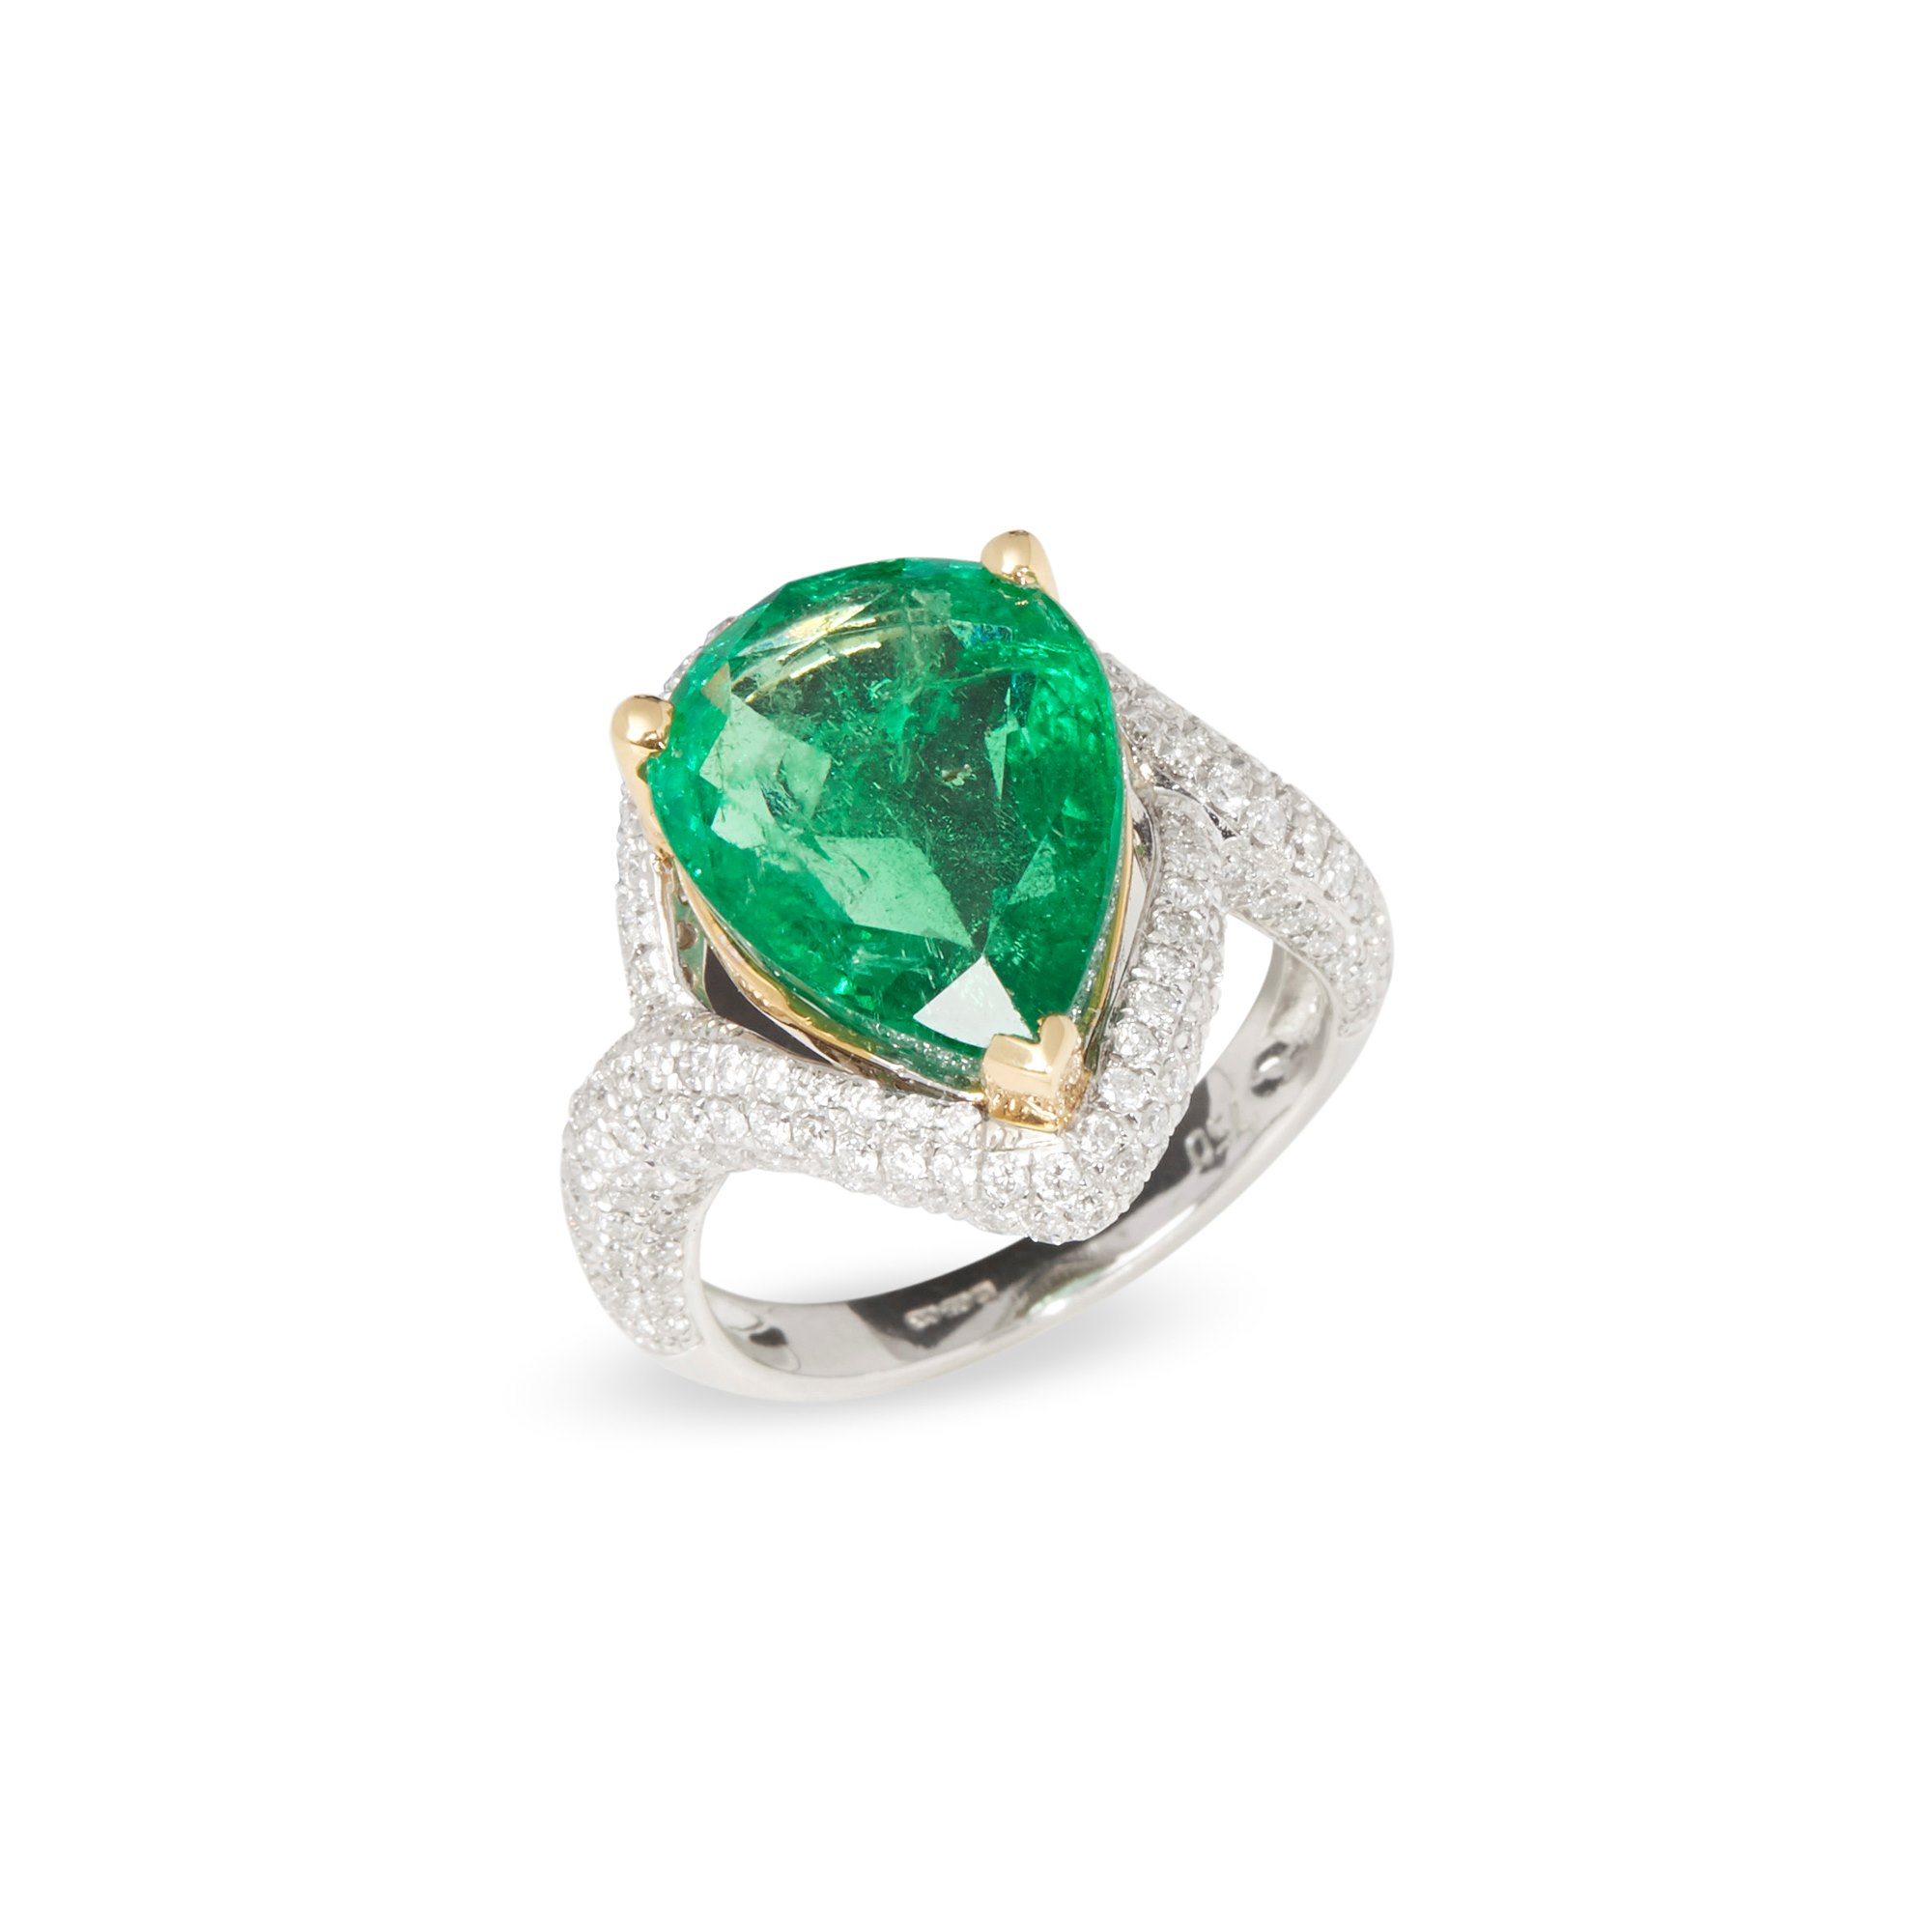 David Jerome Certified 7.04ct Untreated Columbian Emerald and Diamond 18ct Gold Ring